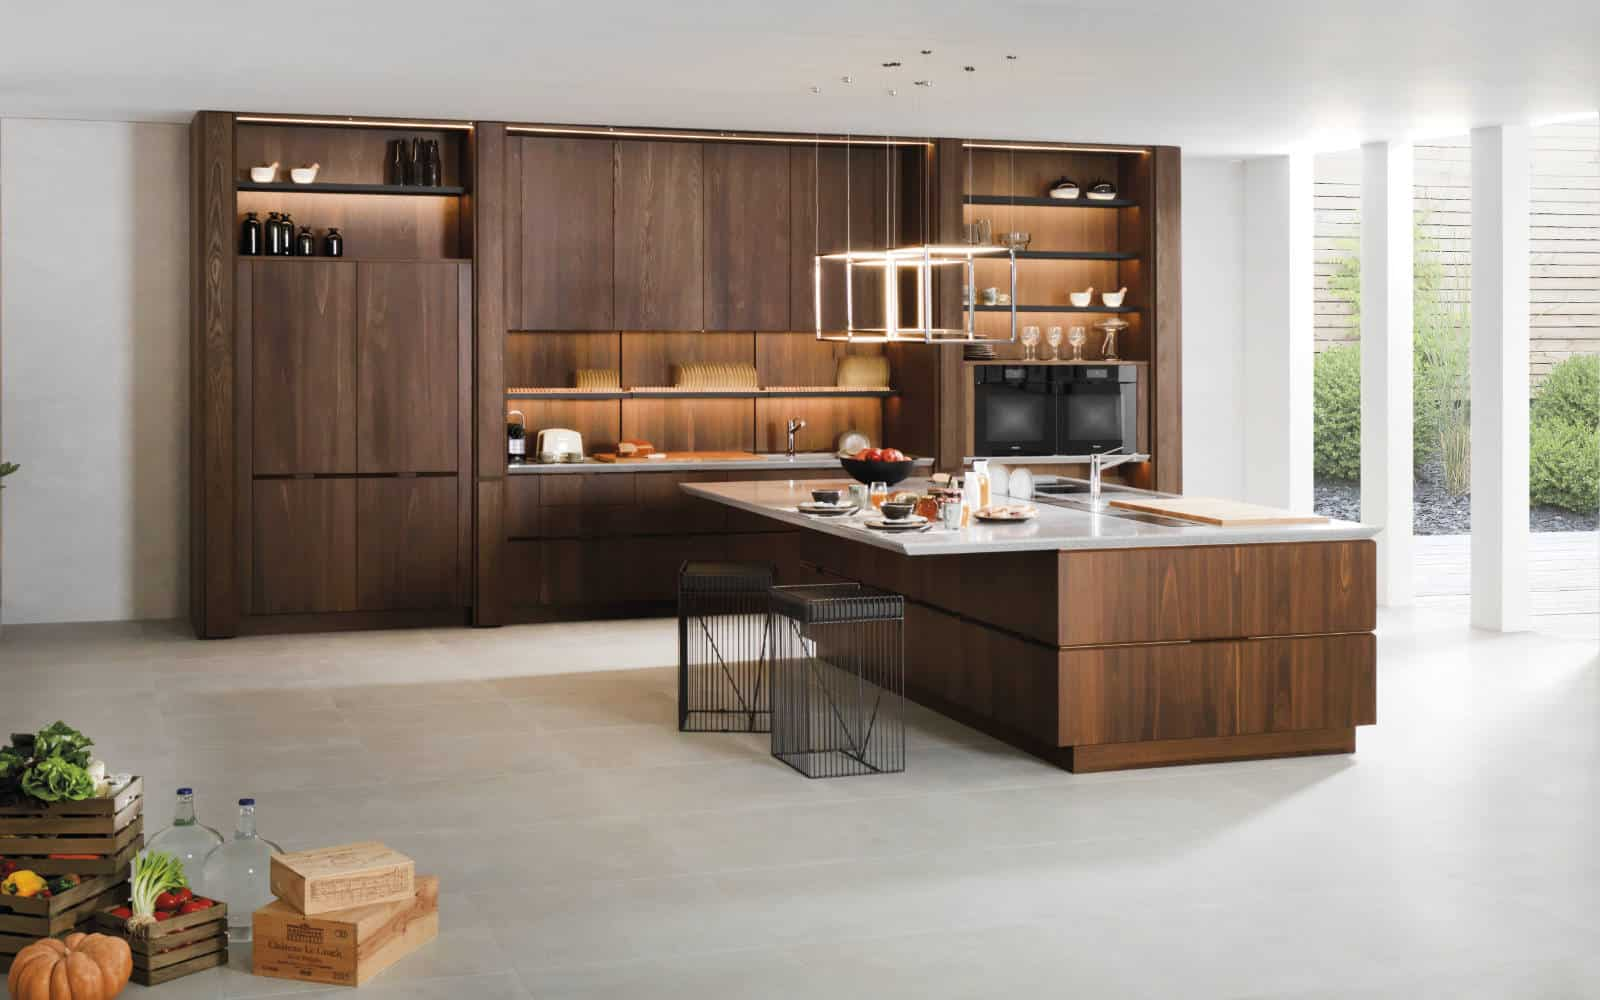 High Quality Kitchens for every Budget